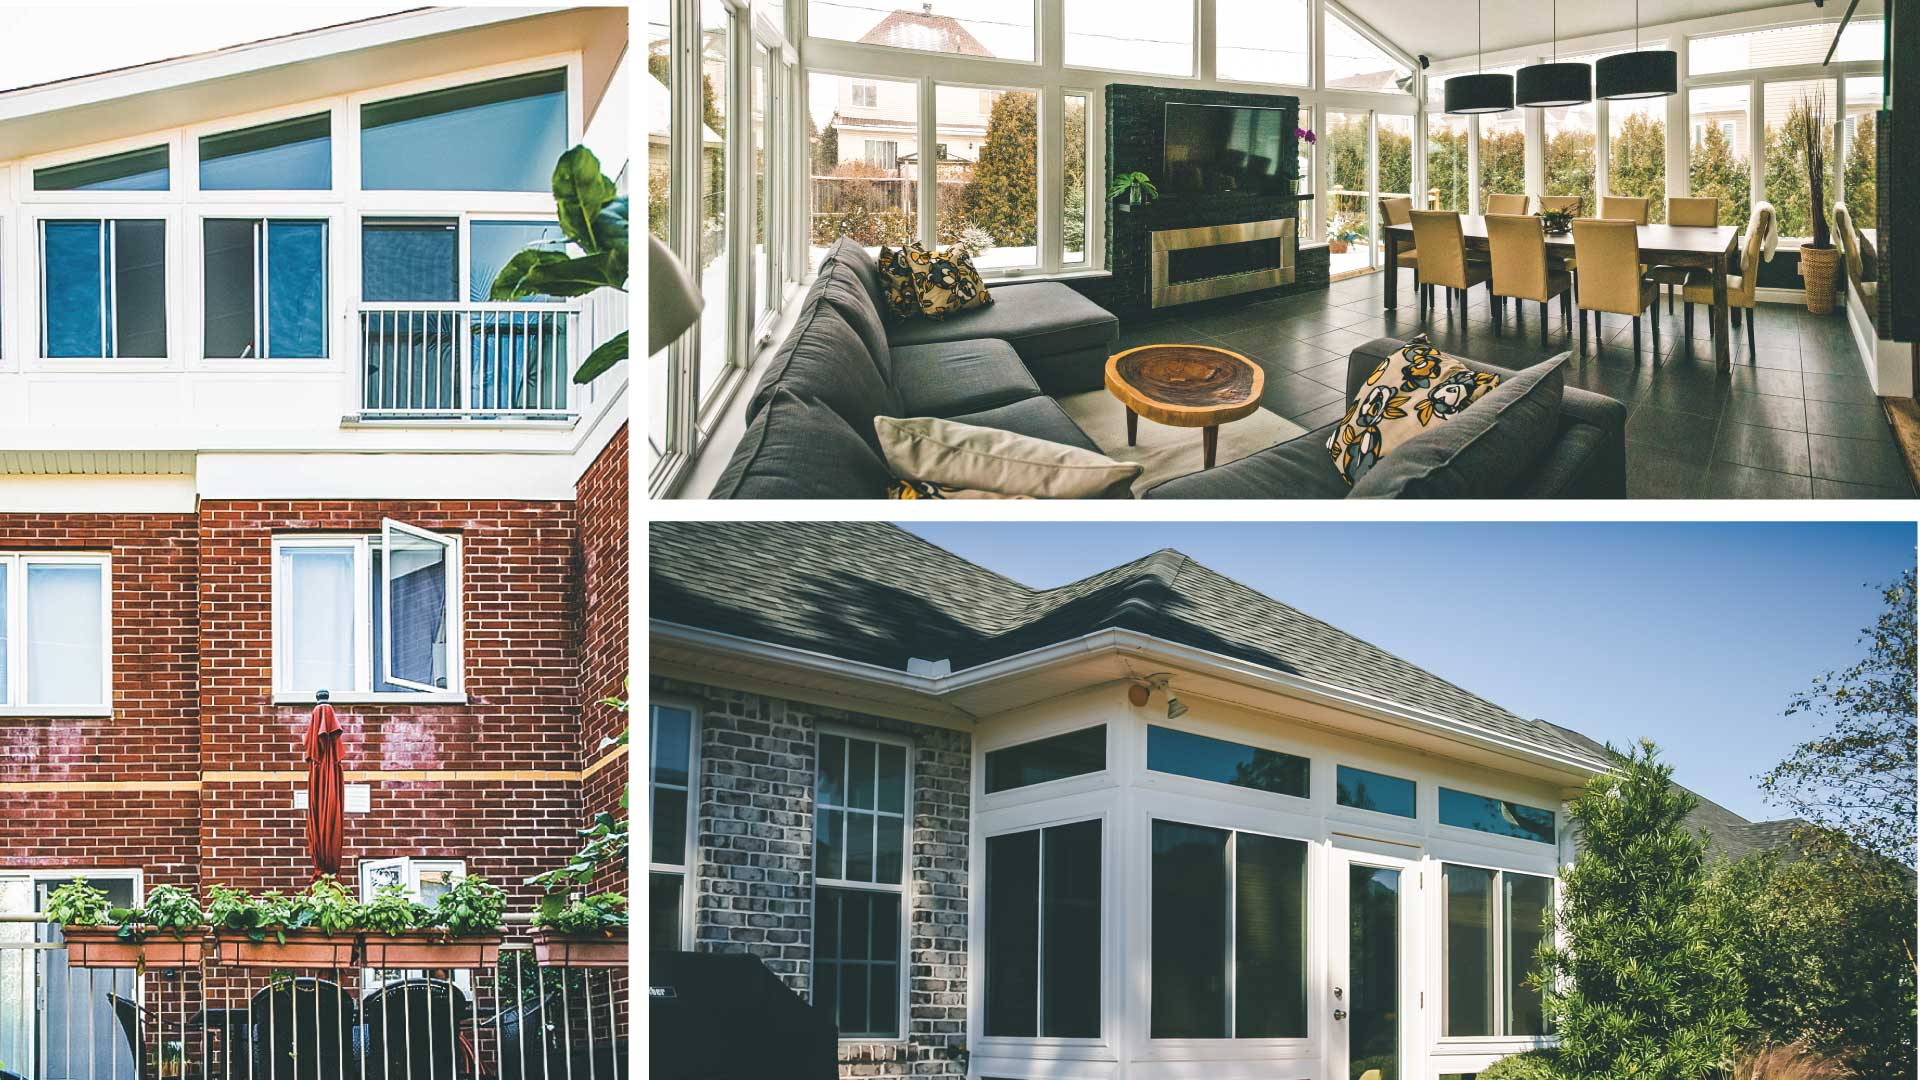 How-man-different-sunroom-styles-are-there